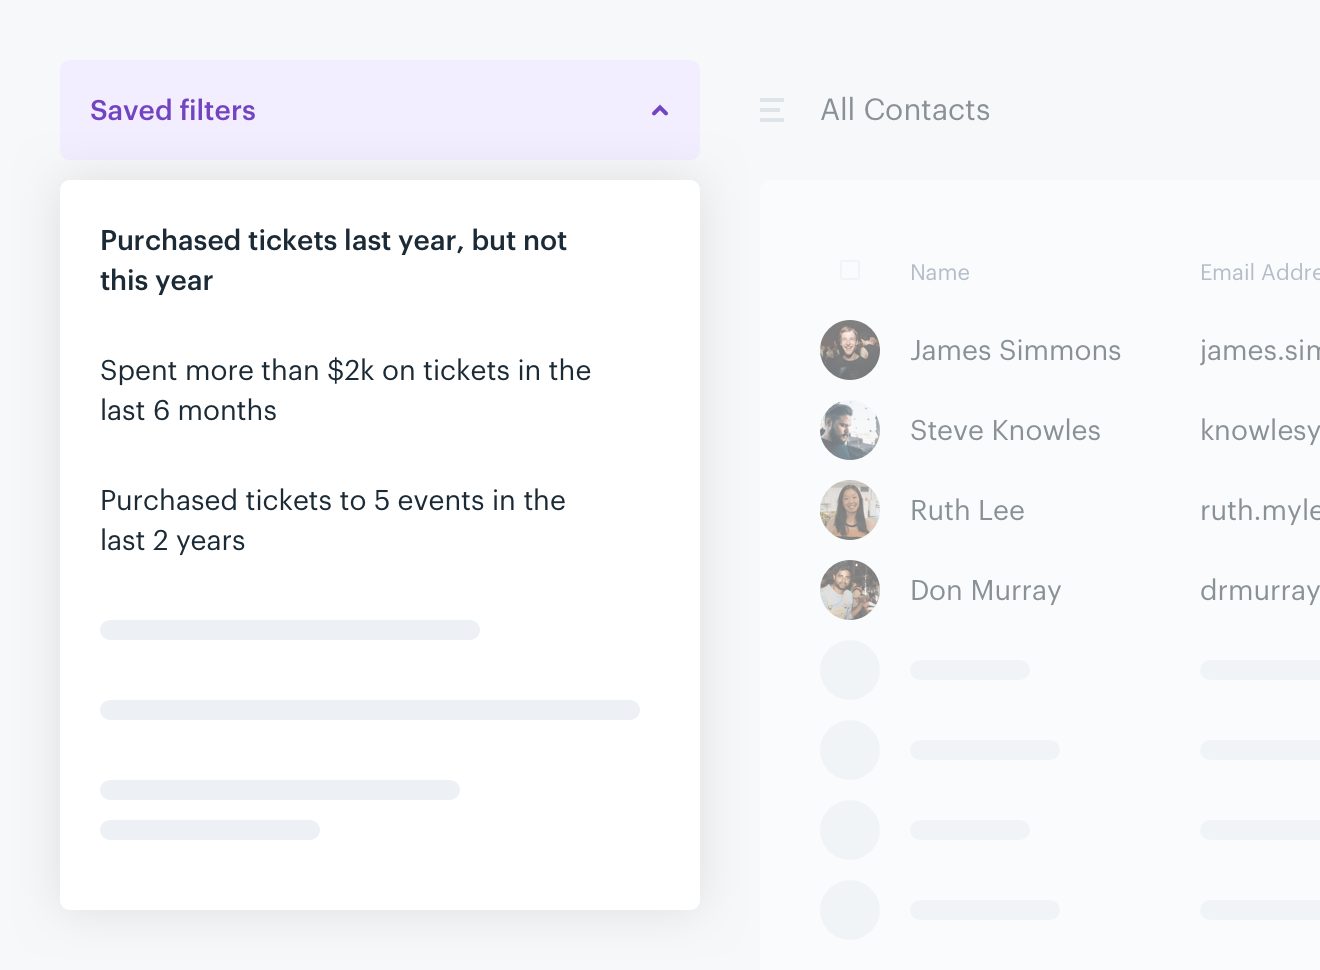 A screenshot of the saved filters view on the Audience Republic platform